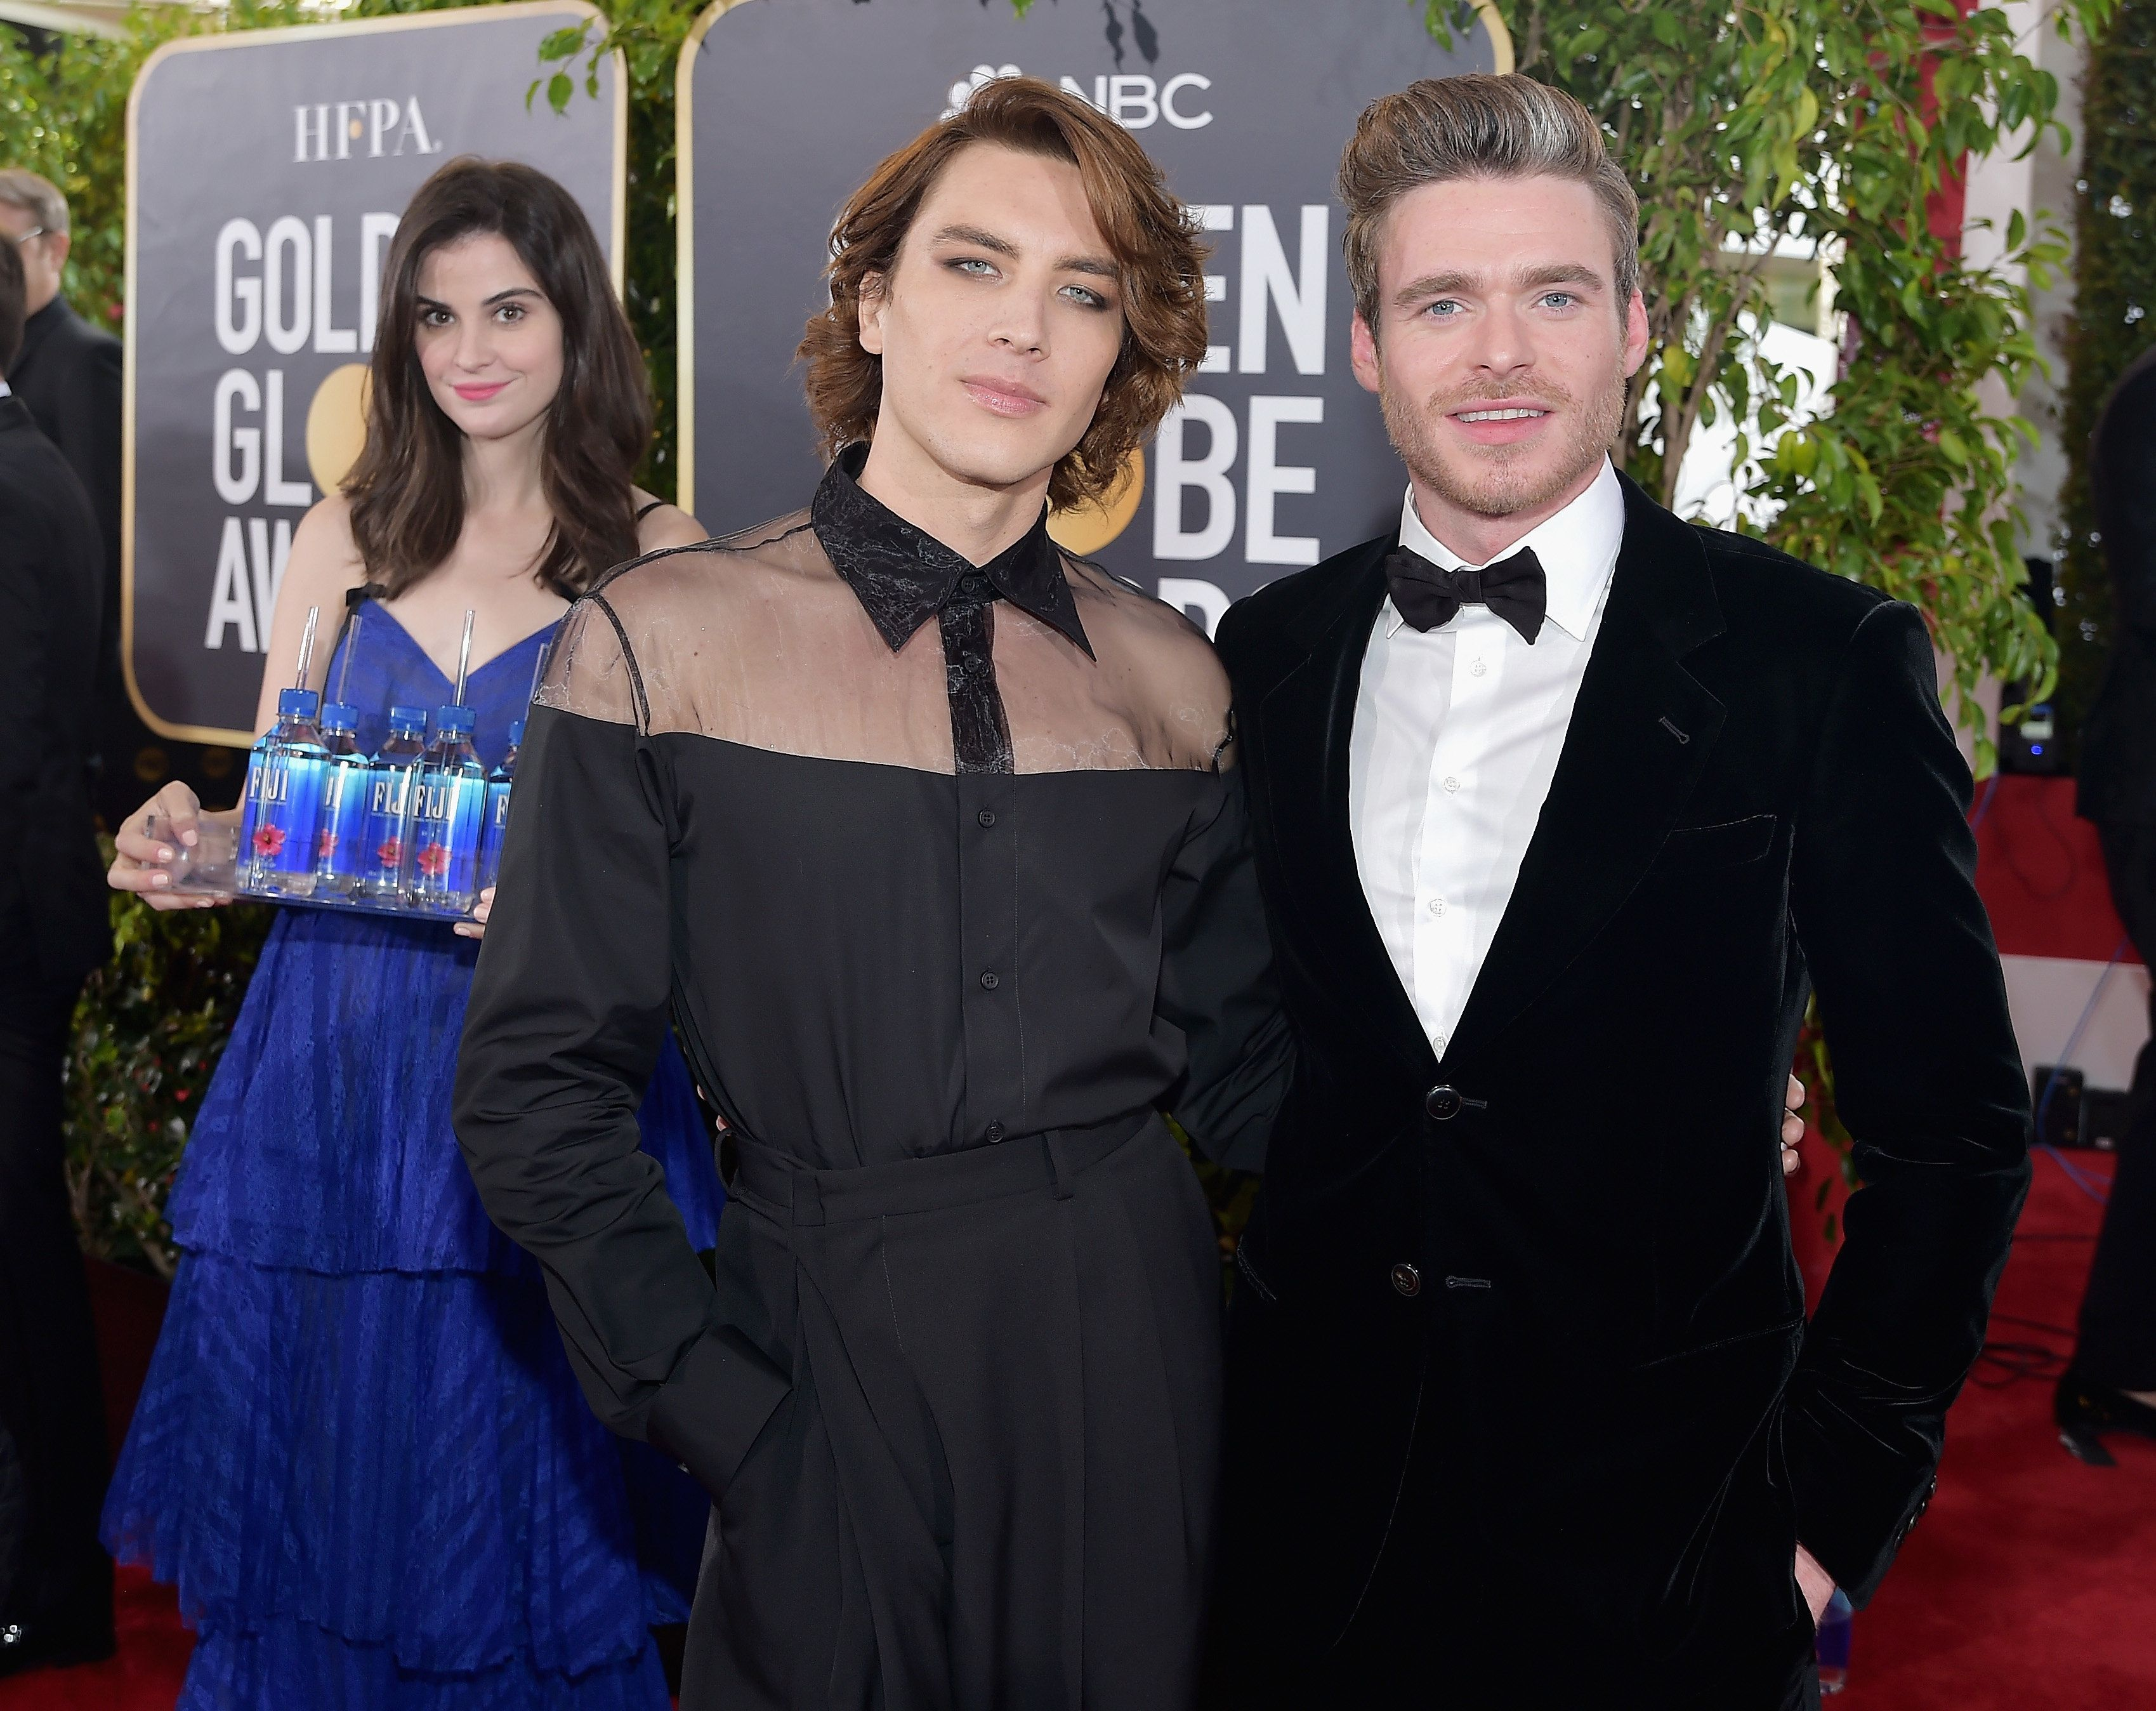 The True Star Of The Golden Globes Red Carpet Was The Fuji Water